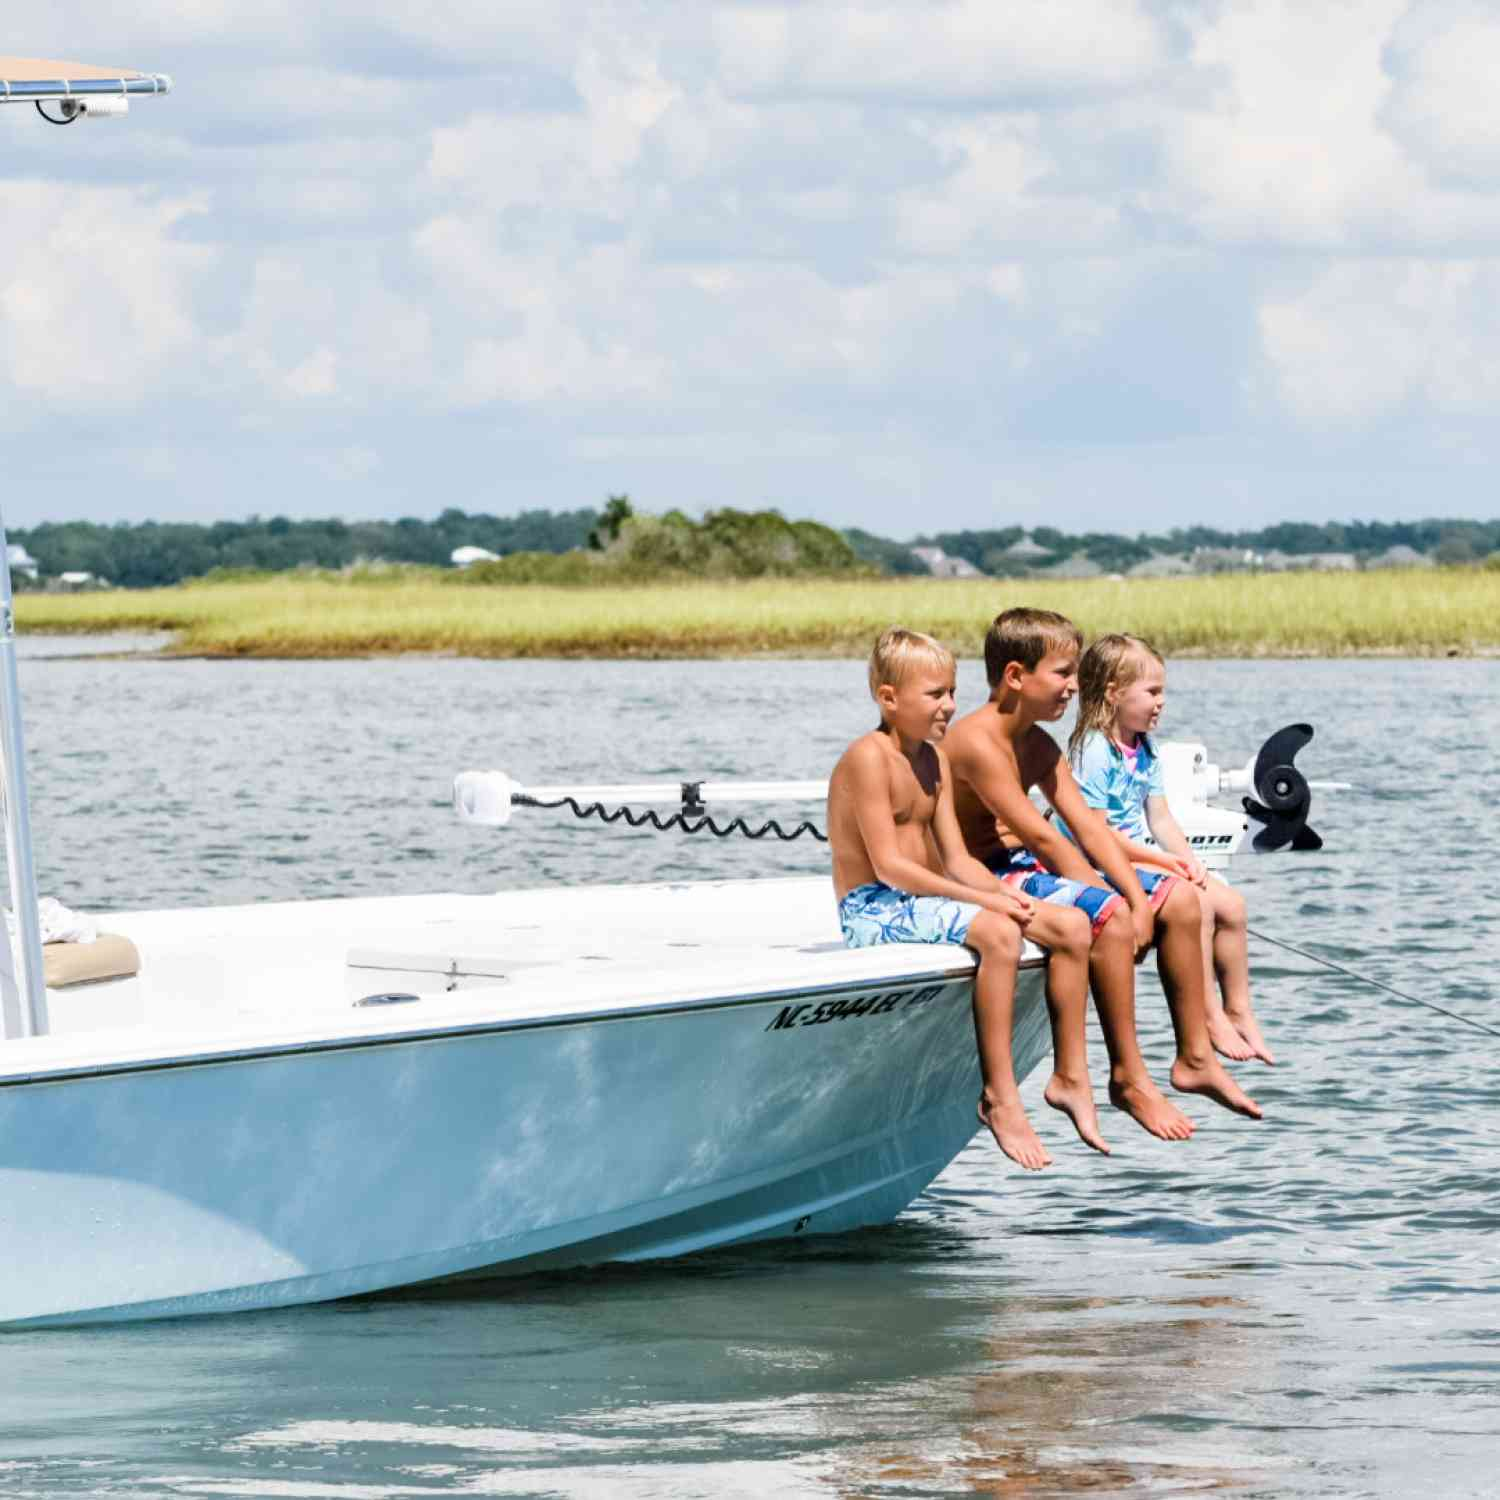 Title: Family Tides - On board their Sportsman Tournament 214 Bay Boat - Location: Swansboro, NC. Participating in the Photo Contest #SportsmanJuly2020